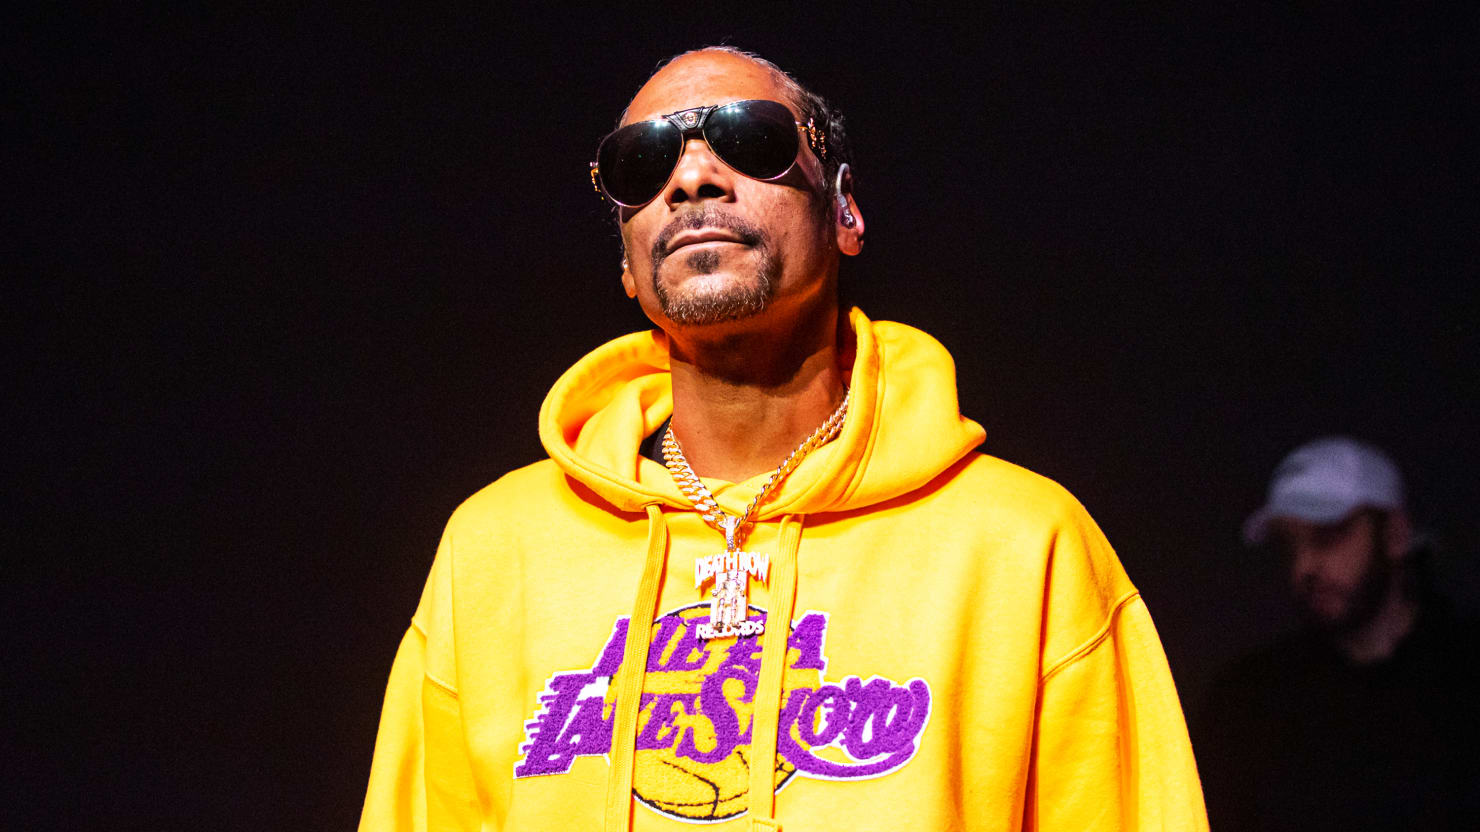 Snoop Dogg's Attacks on Oprah and Gayle King and Defense of Kobe, MJ and Cosby Is Classic Misogynoir